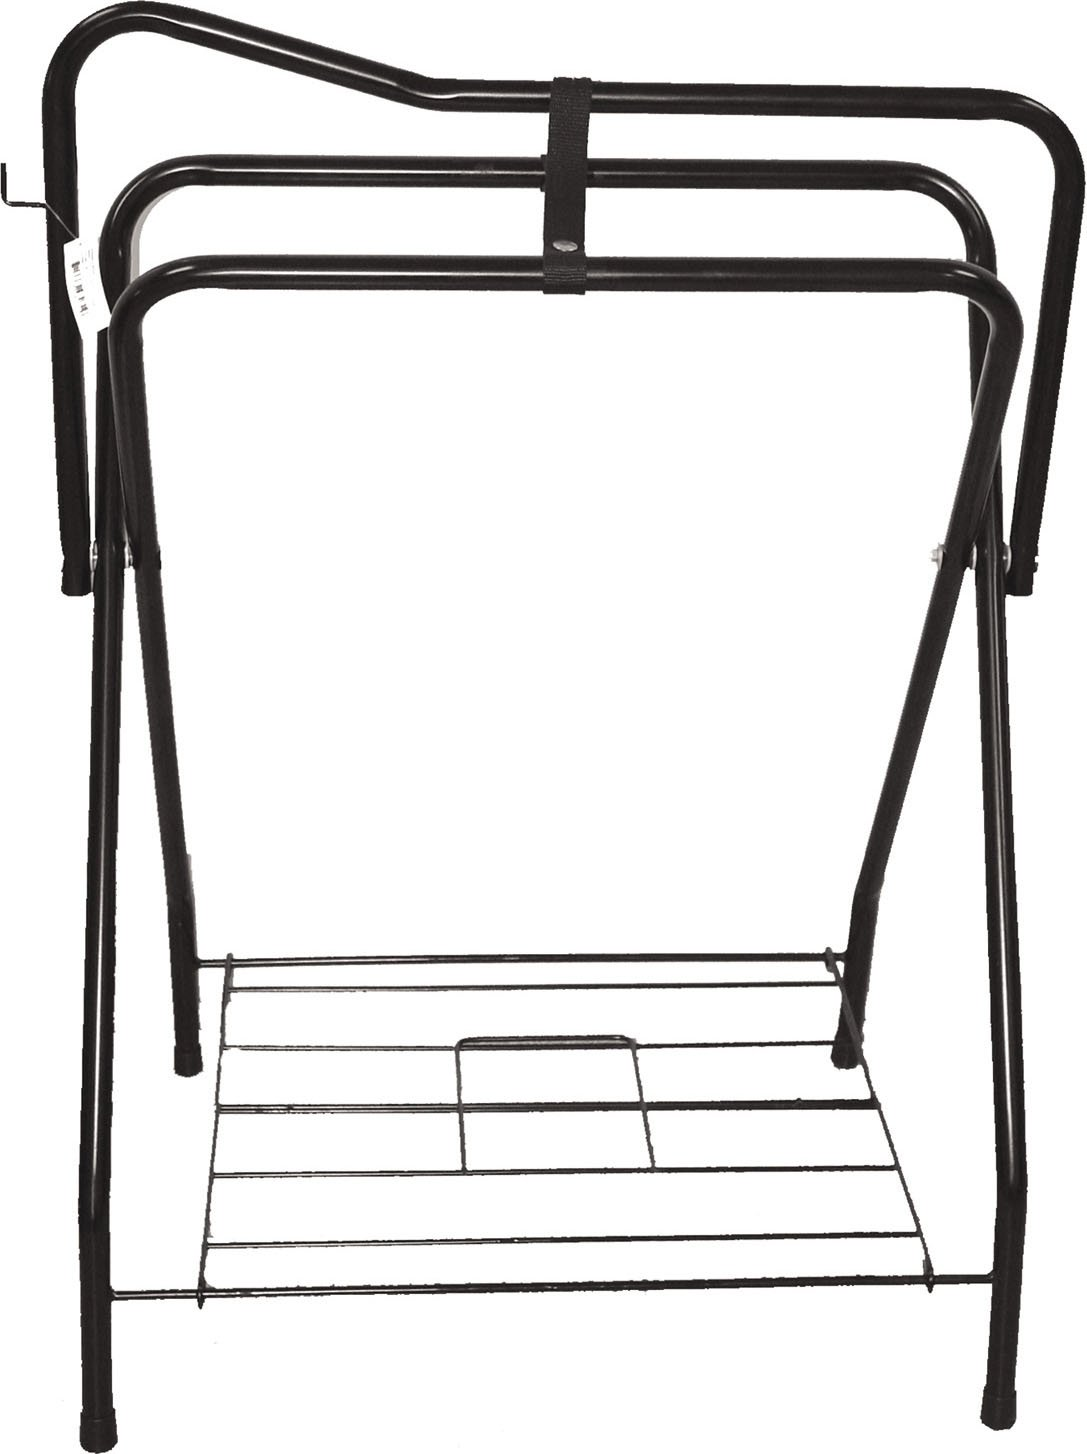 PARTRADE 248032/248031 Western Saddle Rack, 19 by 36 by 25'', Black